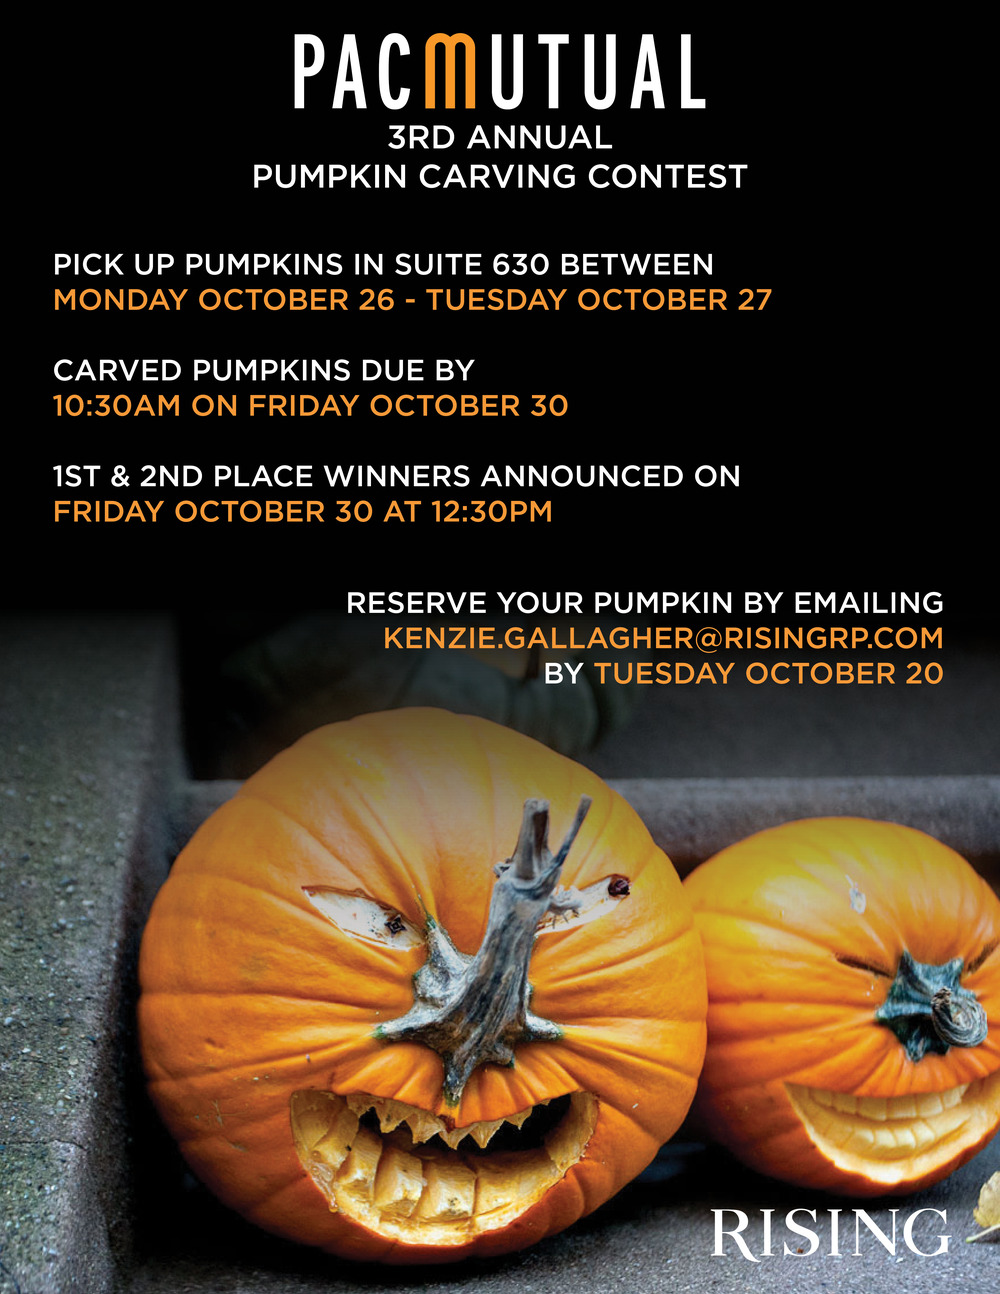 PM_PumpkinCarvingContest2015.jpg